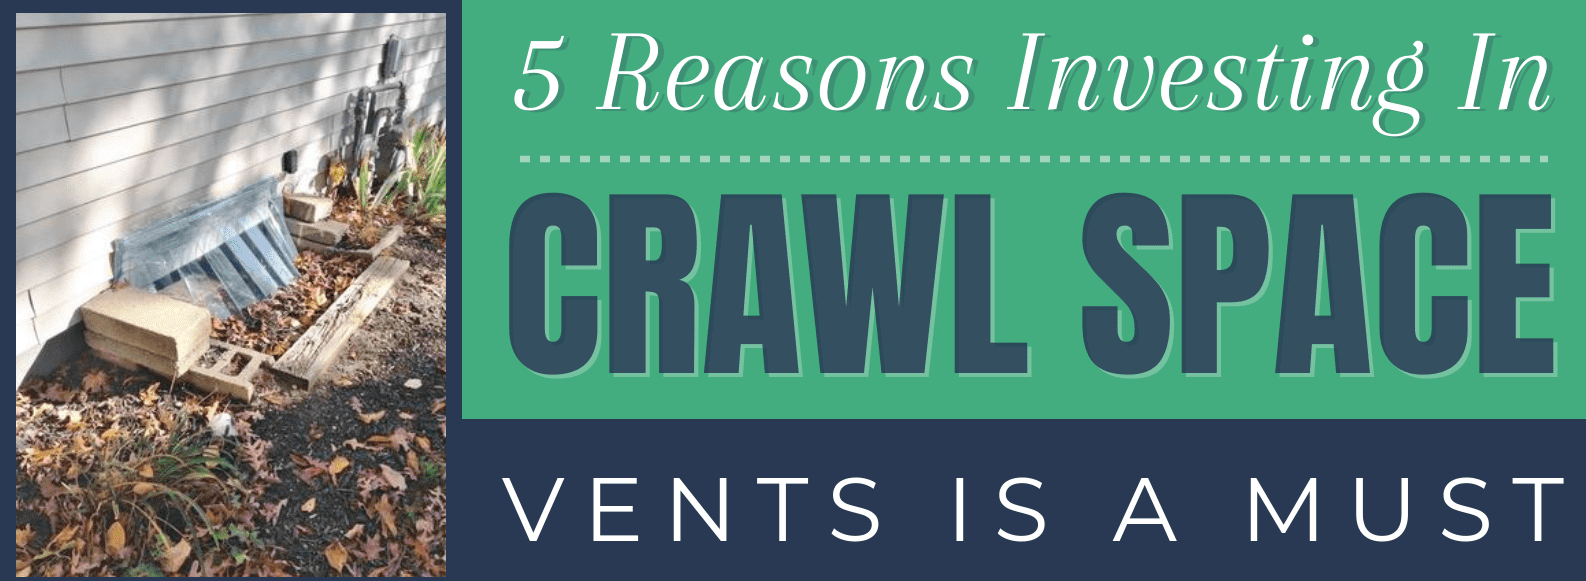 5 Reasons Investing In Crawl Space Vents Is A Must